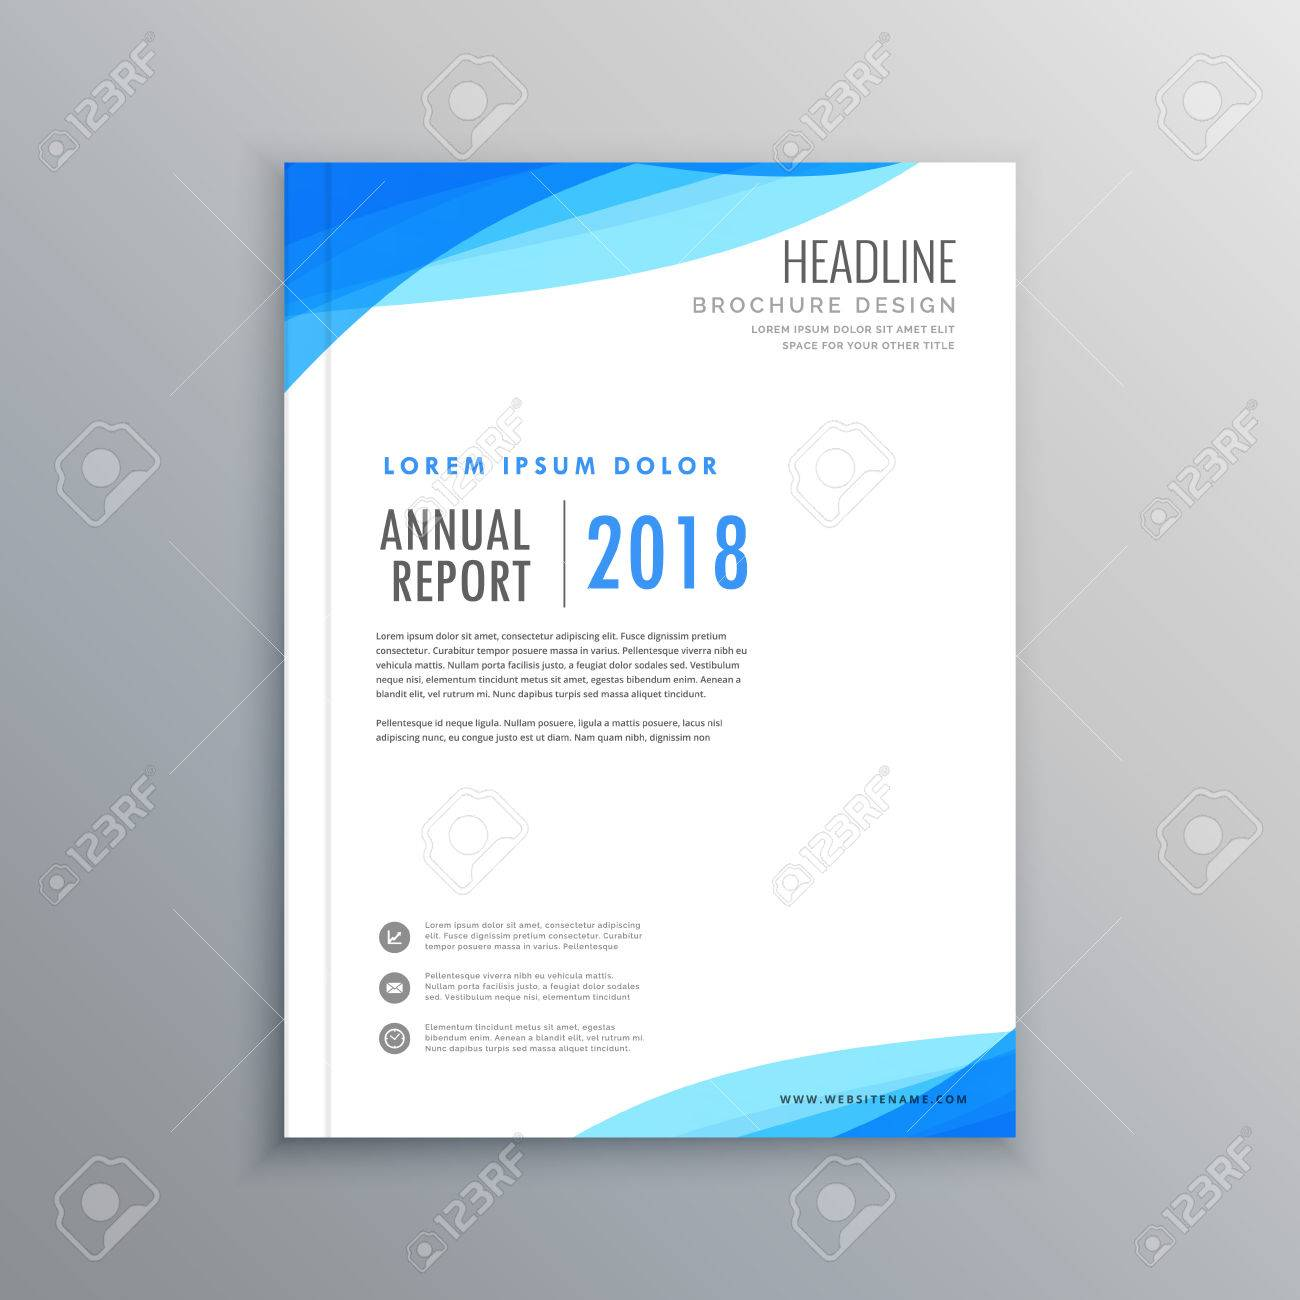 Elegant blue wave business brochure template royalty free cliparts elegant blue wave business brochure template stock vector 70005976 wajeb Image collections